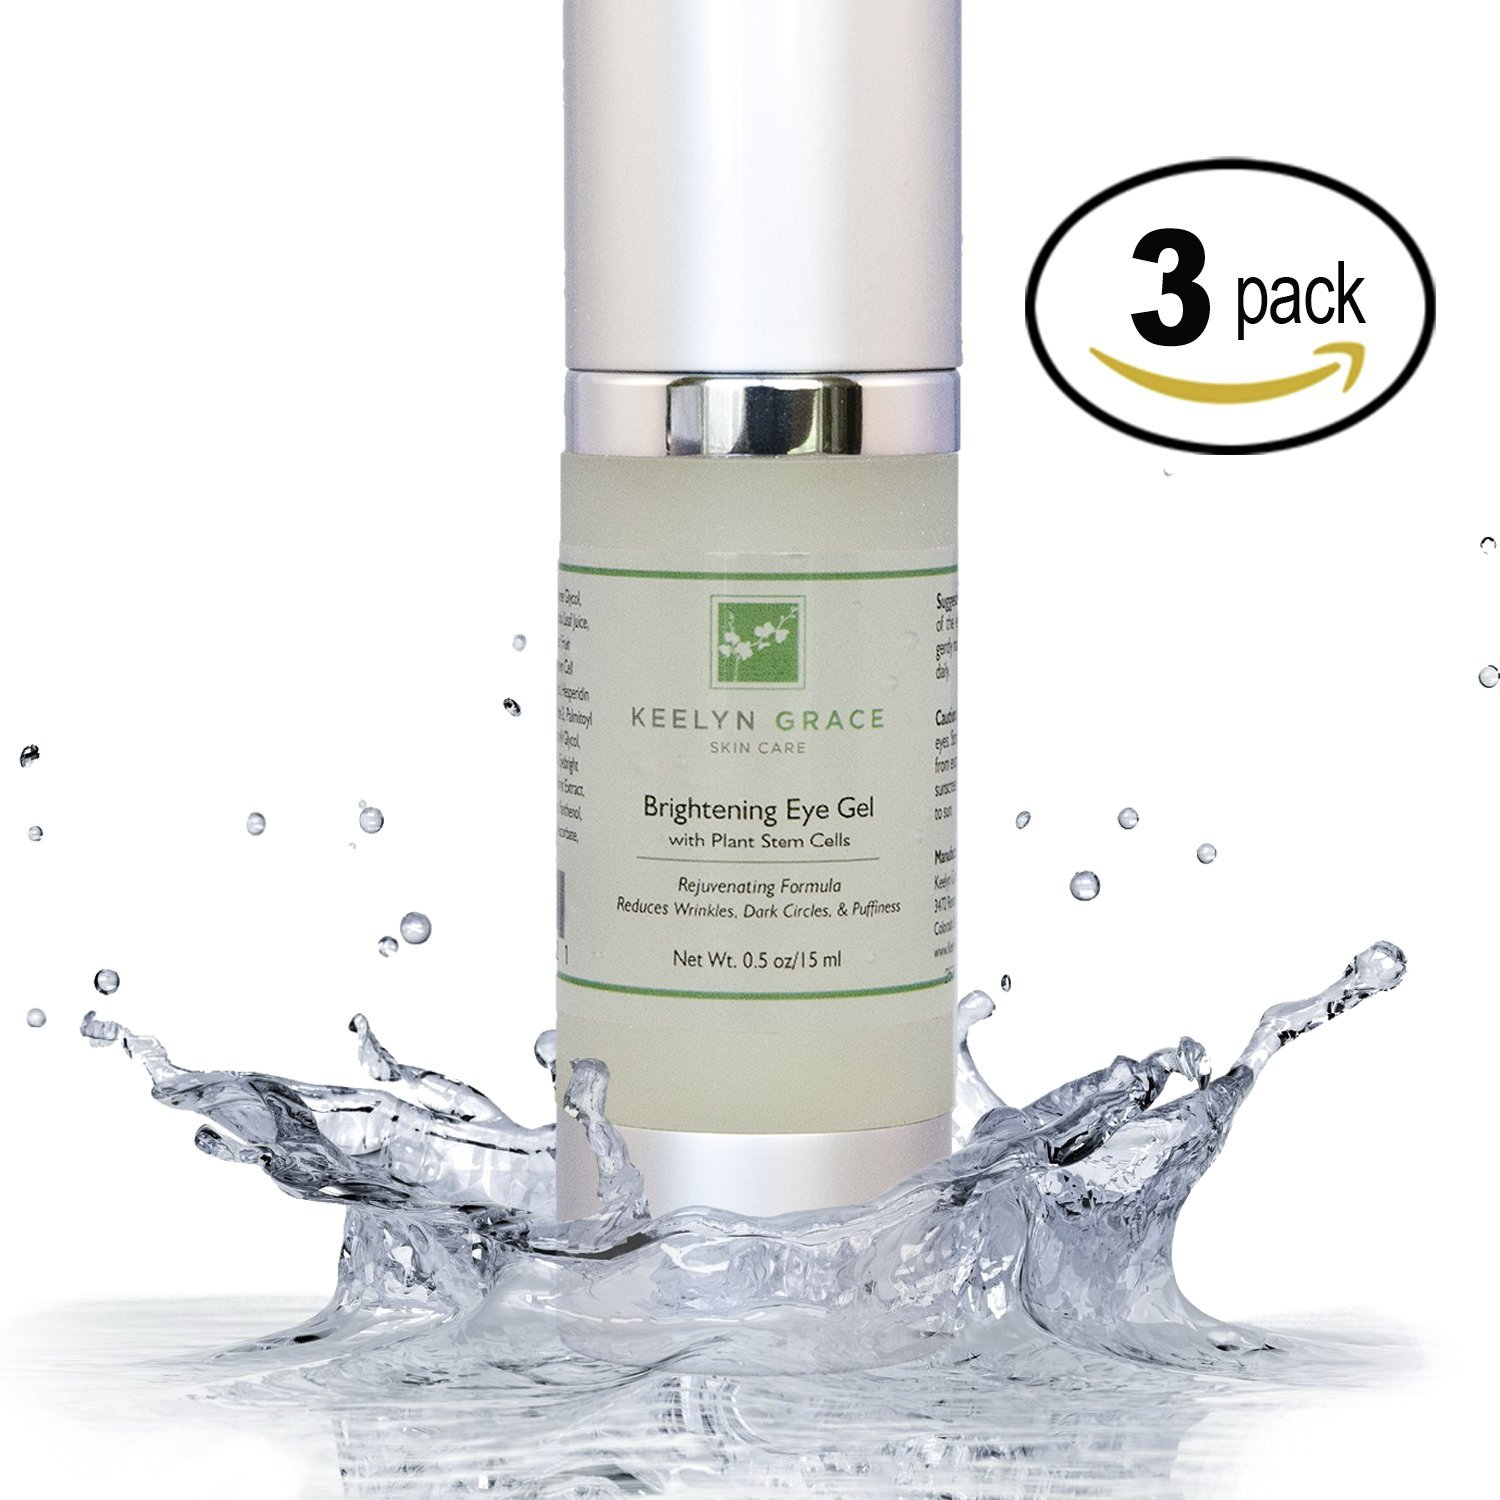 Eye Gel Cream for Dark Circles, Puffiness, Bags and Wrinkles by Keelyn Grace - 3-PACK Plant Stem Cell Therapy with Echinacea, Cucumber, Aloe and Licorice, Rich In Peptides, Vitamin C, Hyaluronic Acid